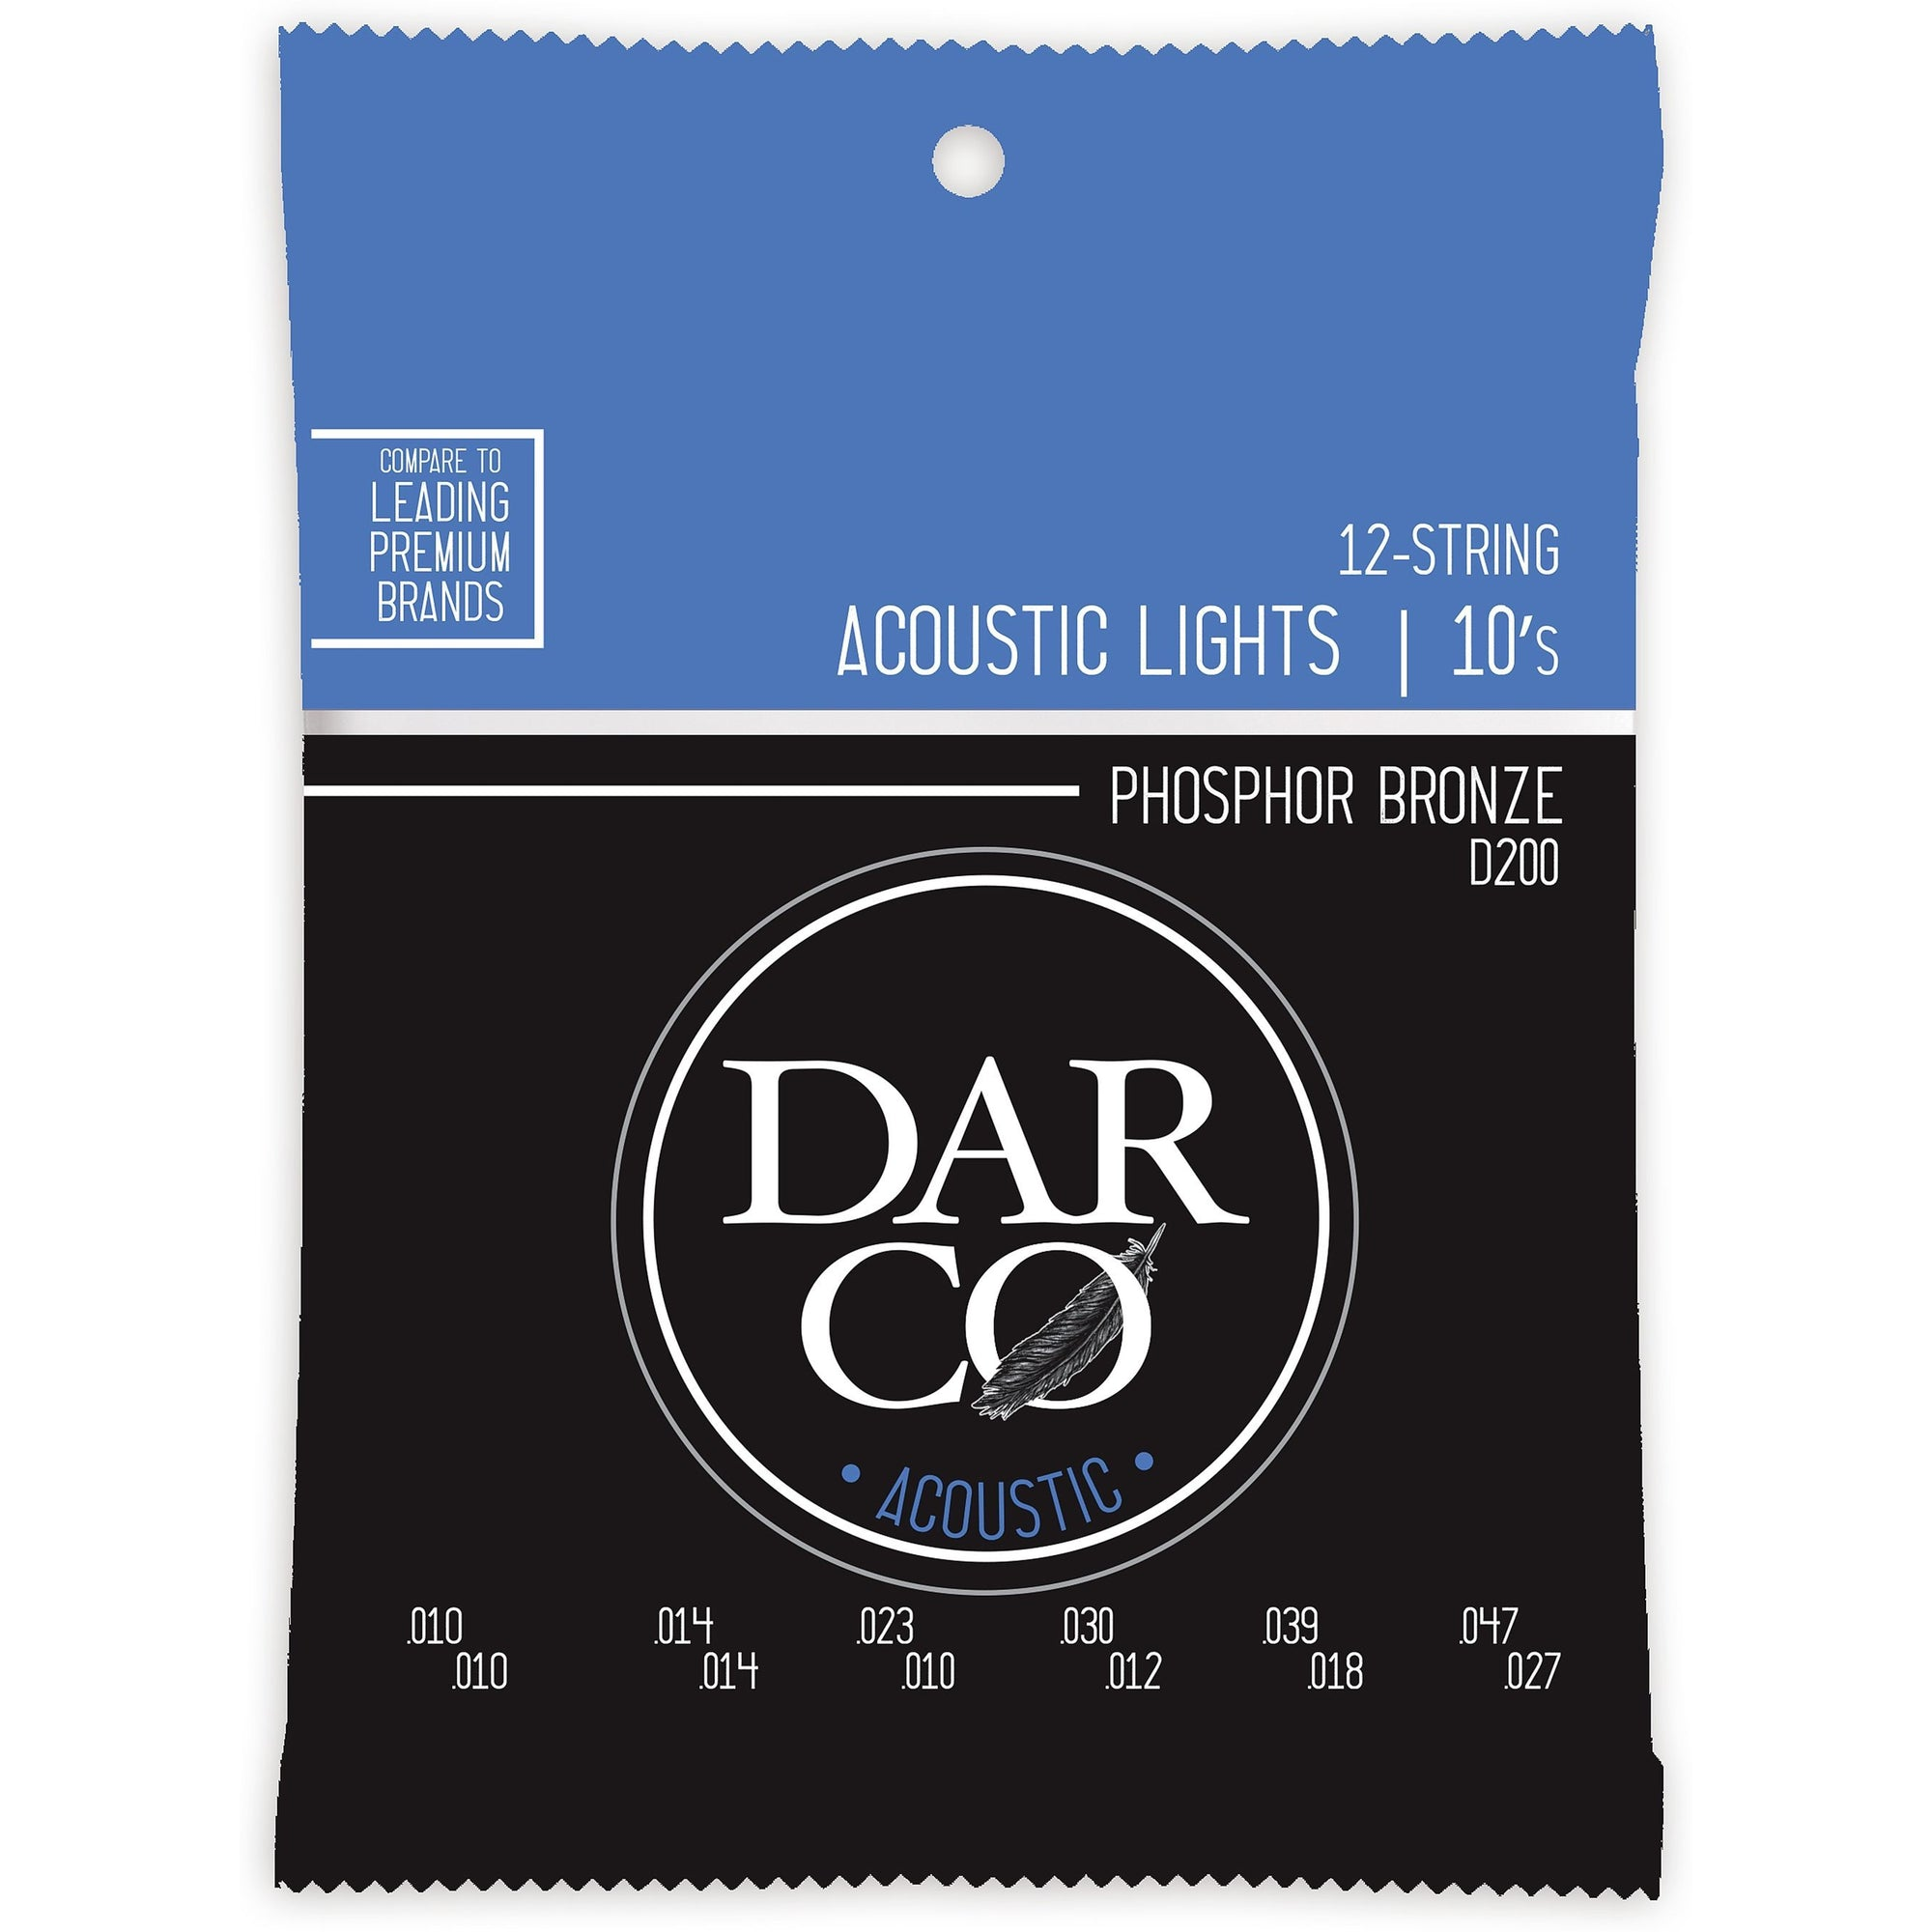 Darco Phosphor Bronze 12-String Acoustic Guitar Strings, D200, Extra Light